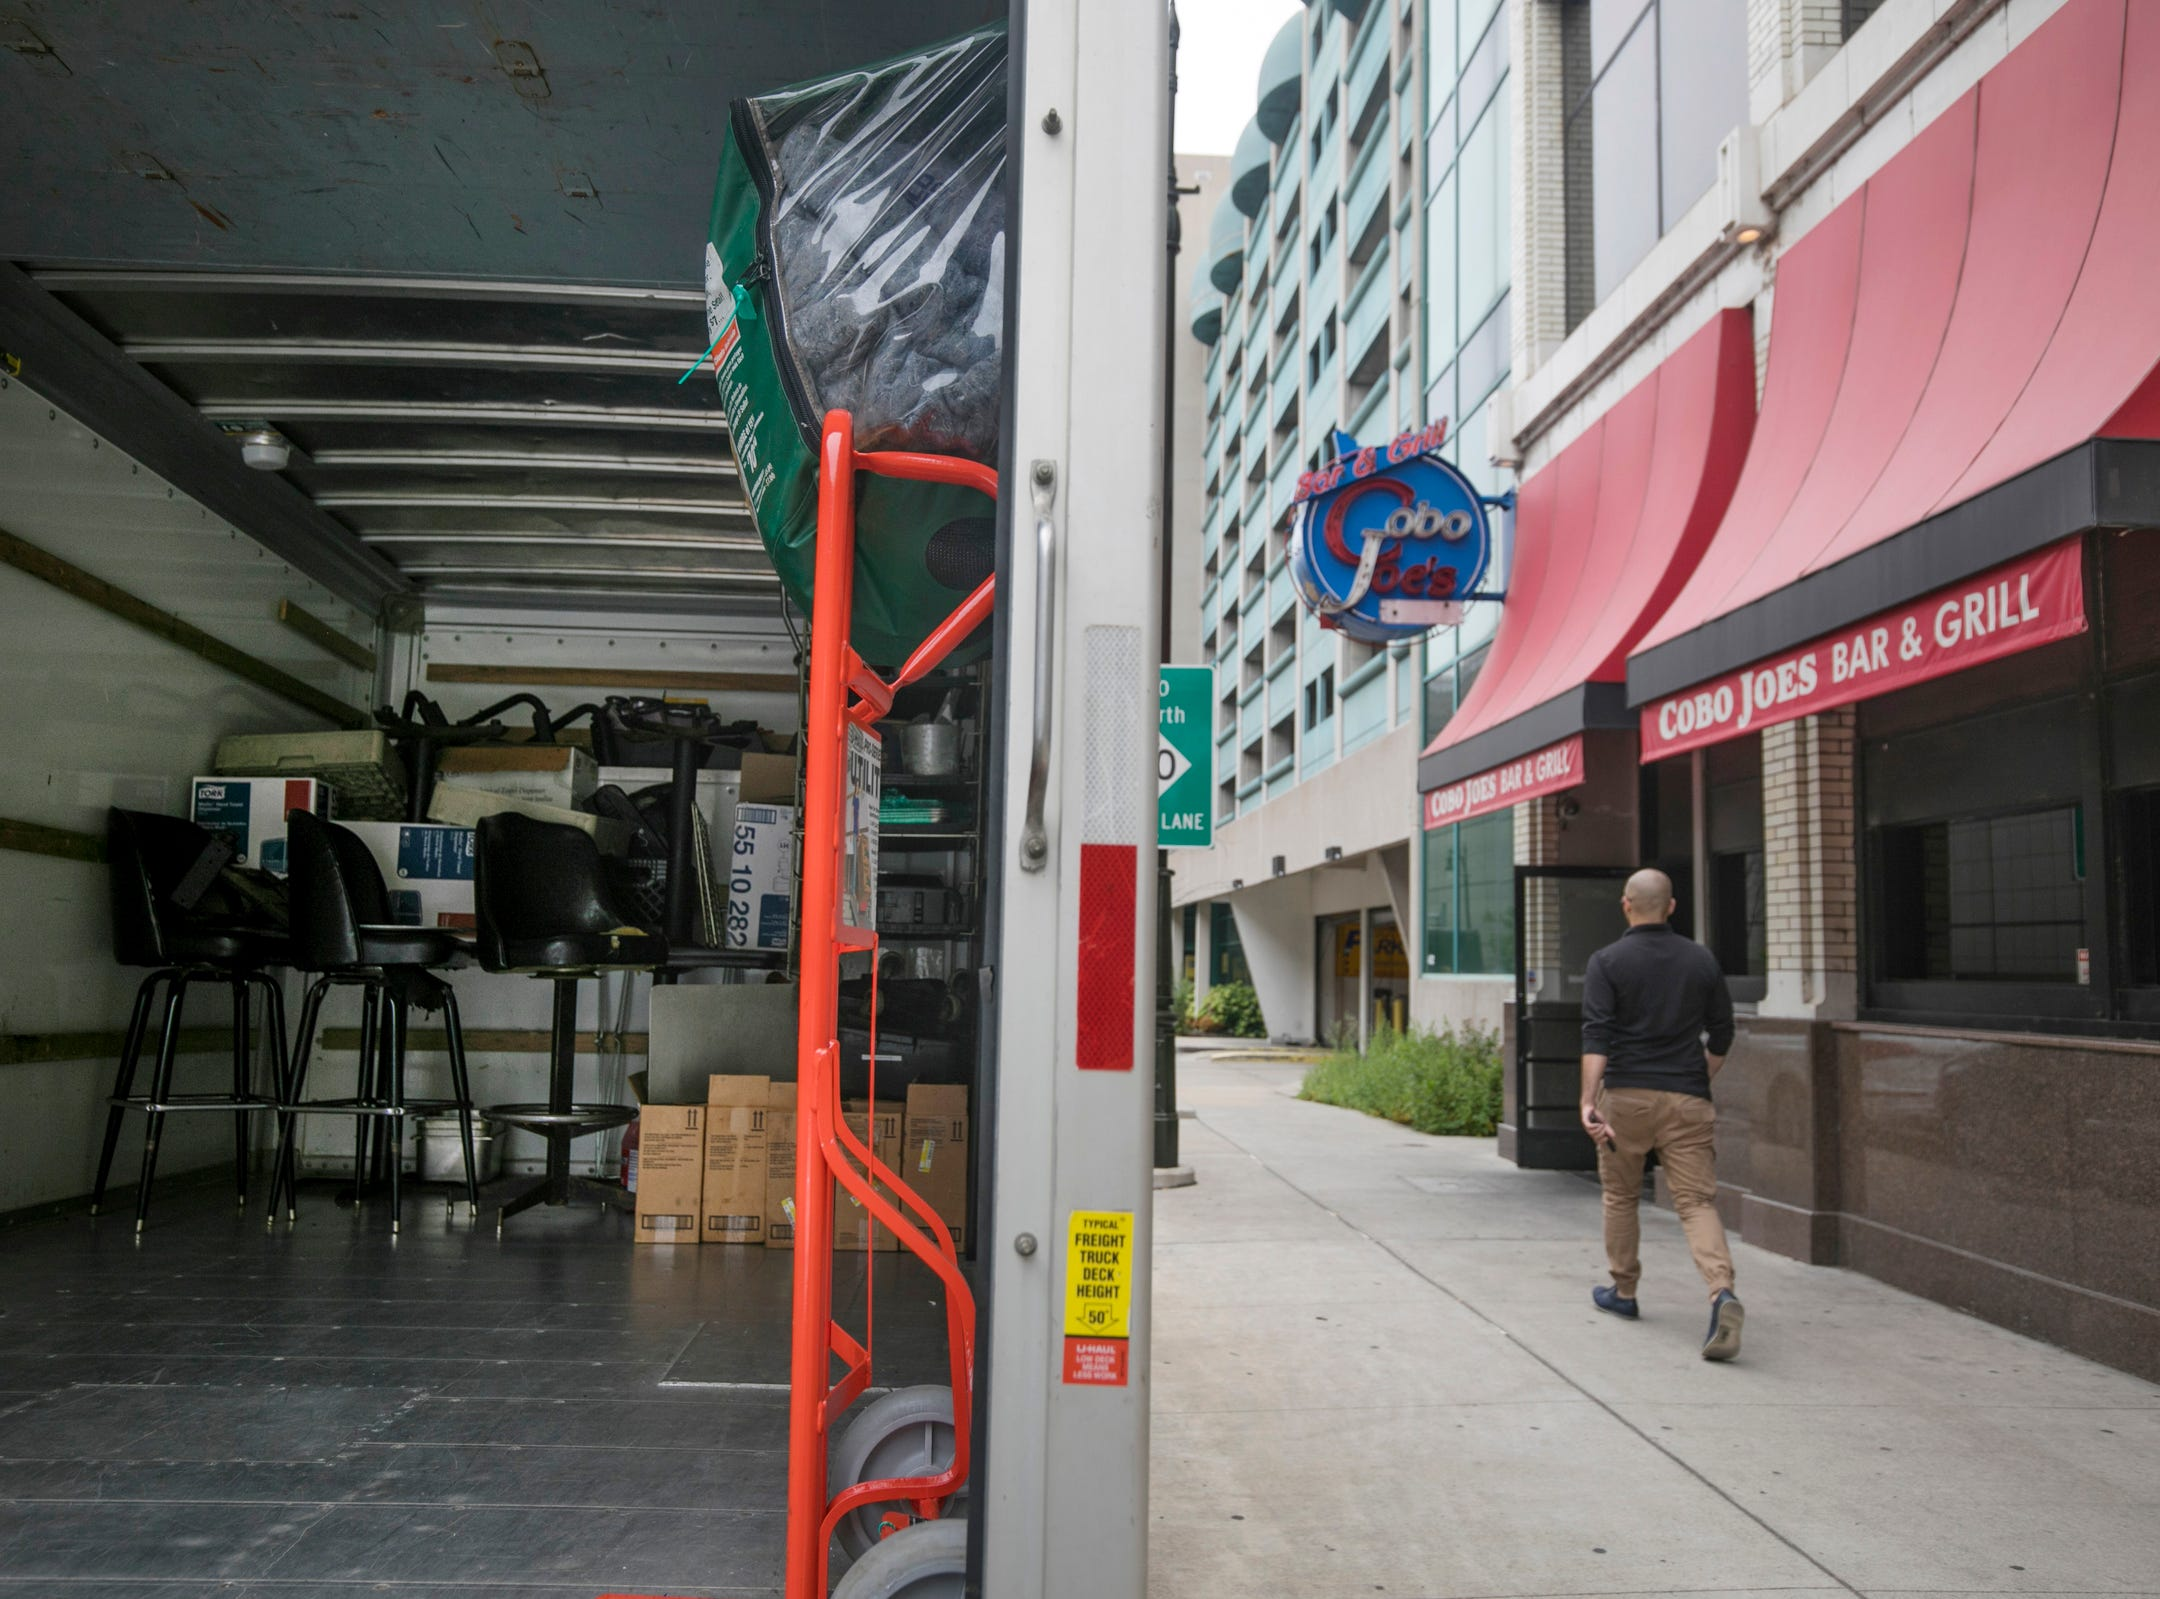 A U-Haul truck sits at the curb outside of Cobo Joe's as co-owners Richard Cadreau, 71, and Delroy Thomas, 49, pack up memorabilia before closing the doors on Tuesday, July 31, 2018.